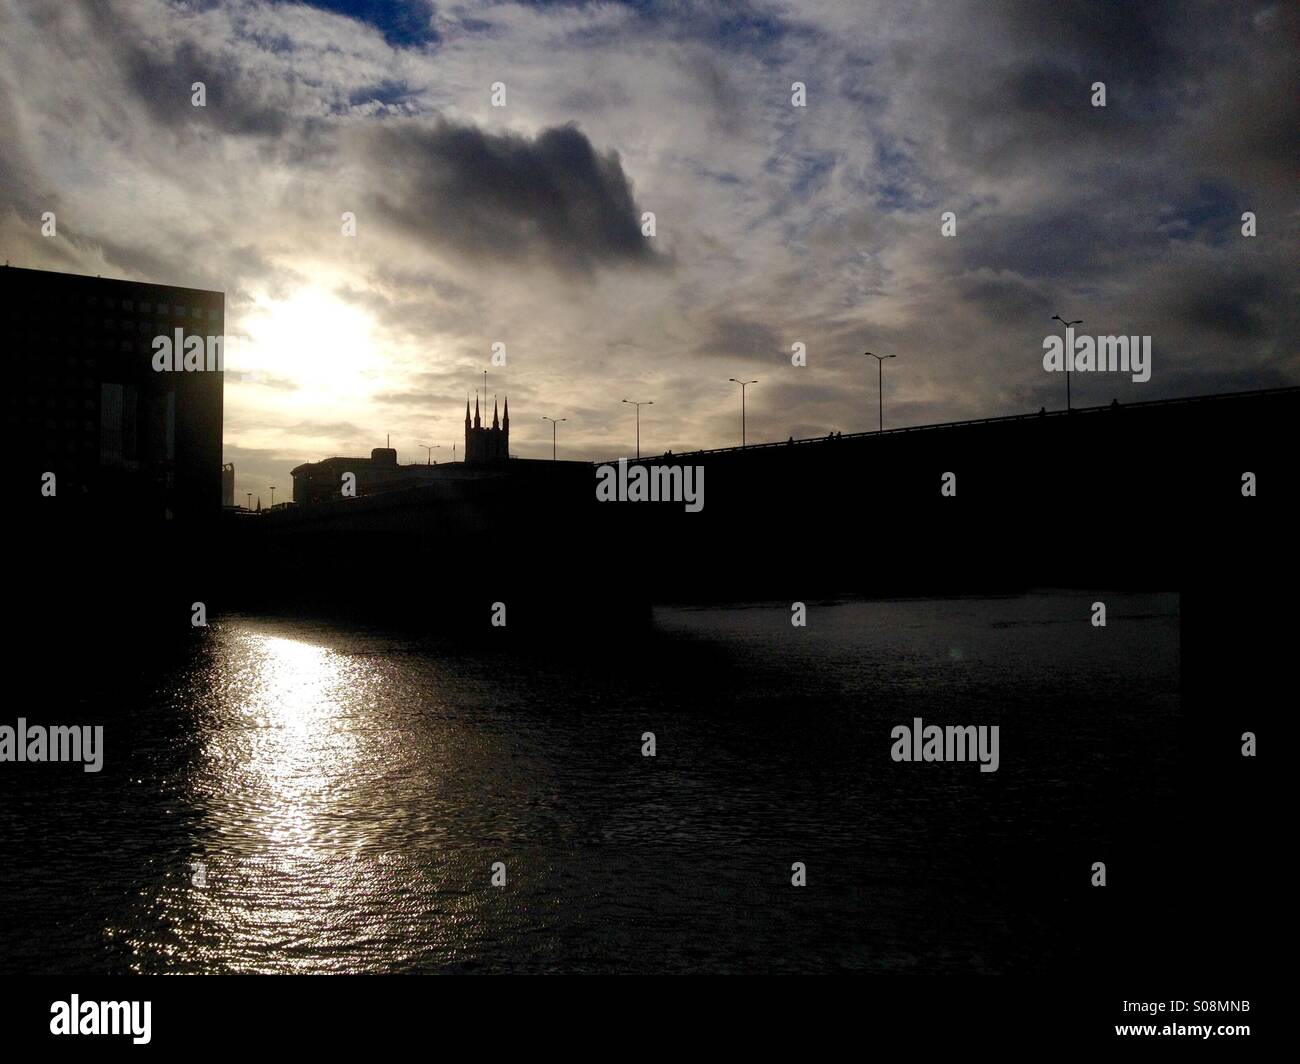 Low sun shines on the Thames, London Bridge silhouette - Stock Image